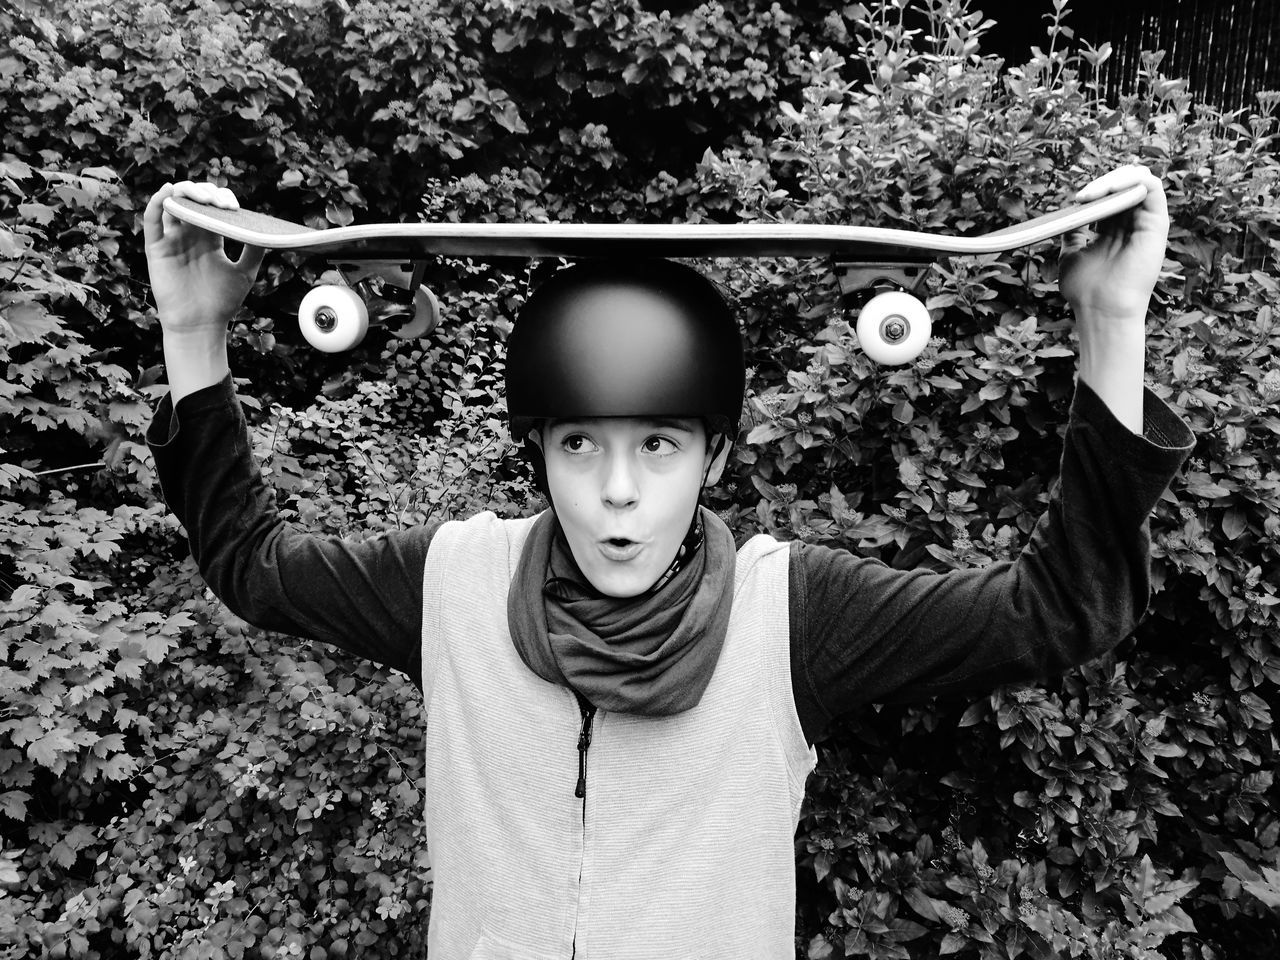 EyeEm Selects The Skateboarder Portrait Skateboarder Sports Helmet Outdoors Teenager Headwear Childhood Front View One Person Standing Waist Up Concentration Day Tree